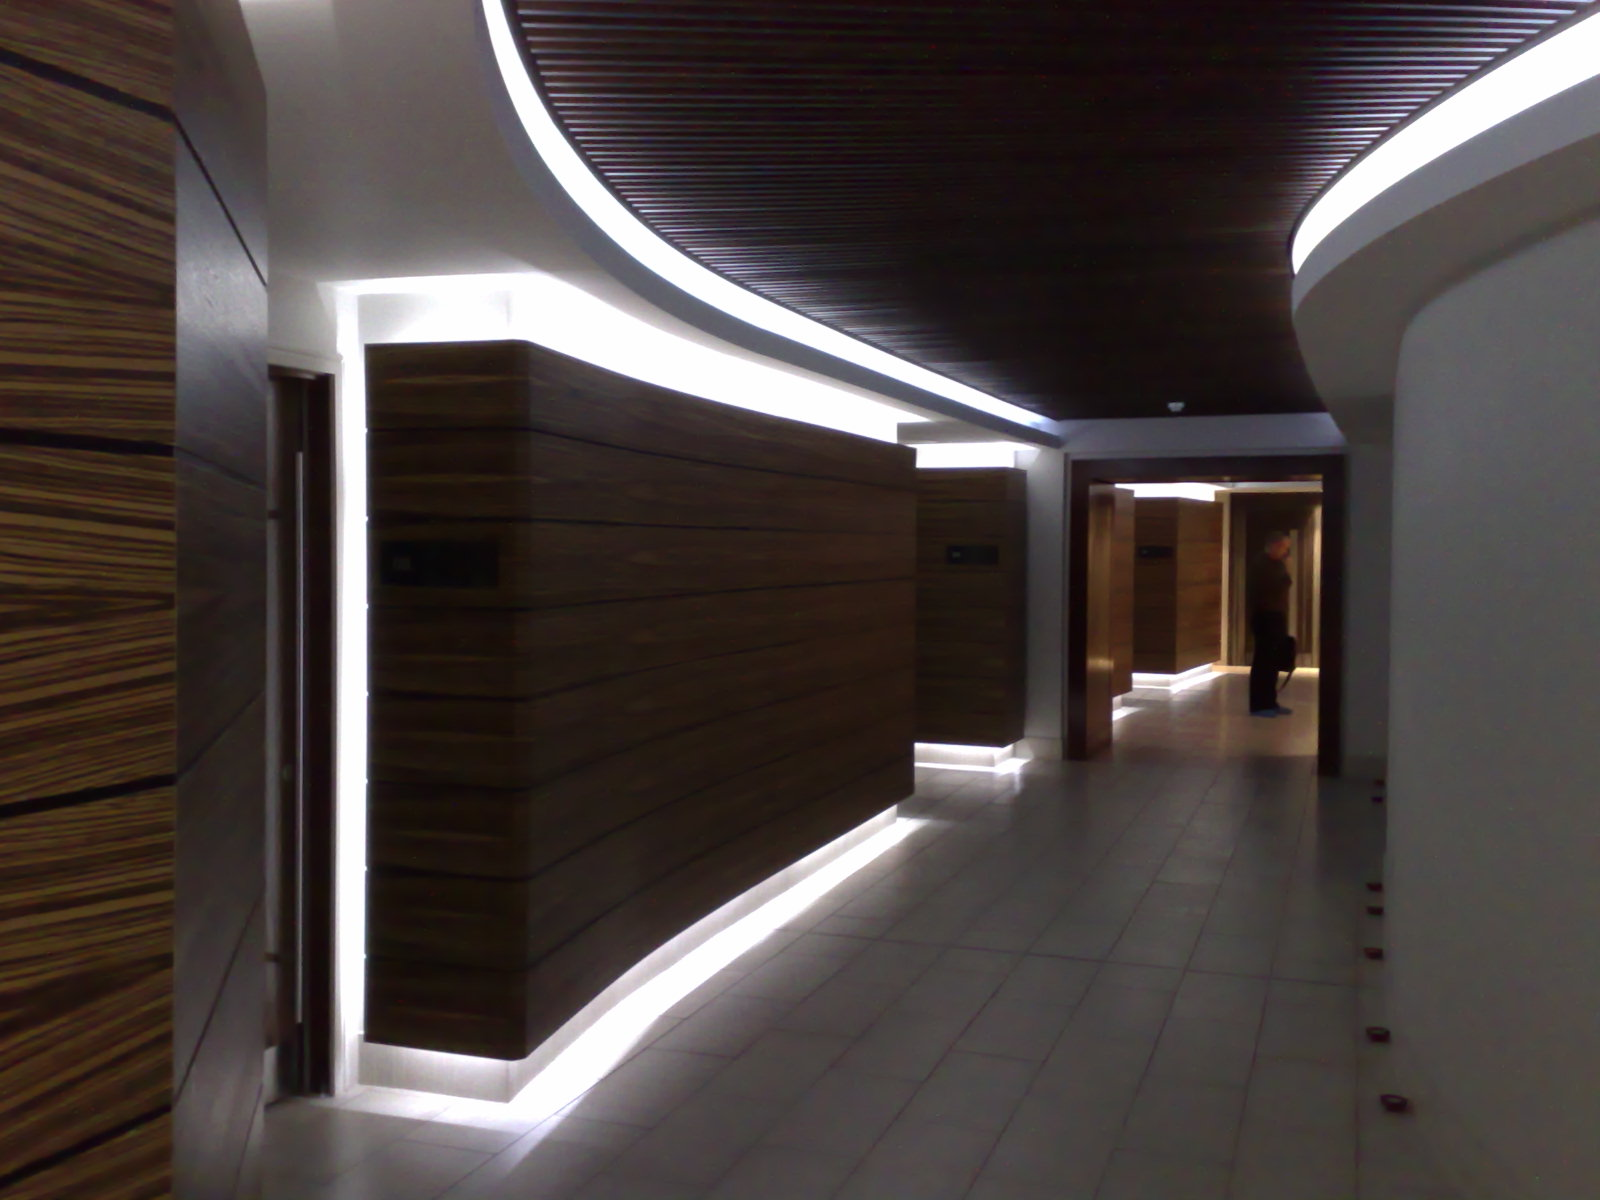 Led lights from fofx hotel style led lighting and fibre - Plafones modernos ...